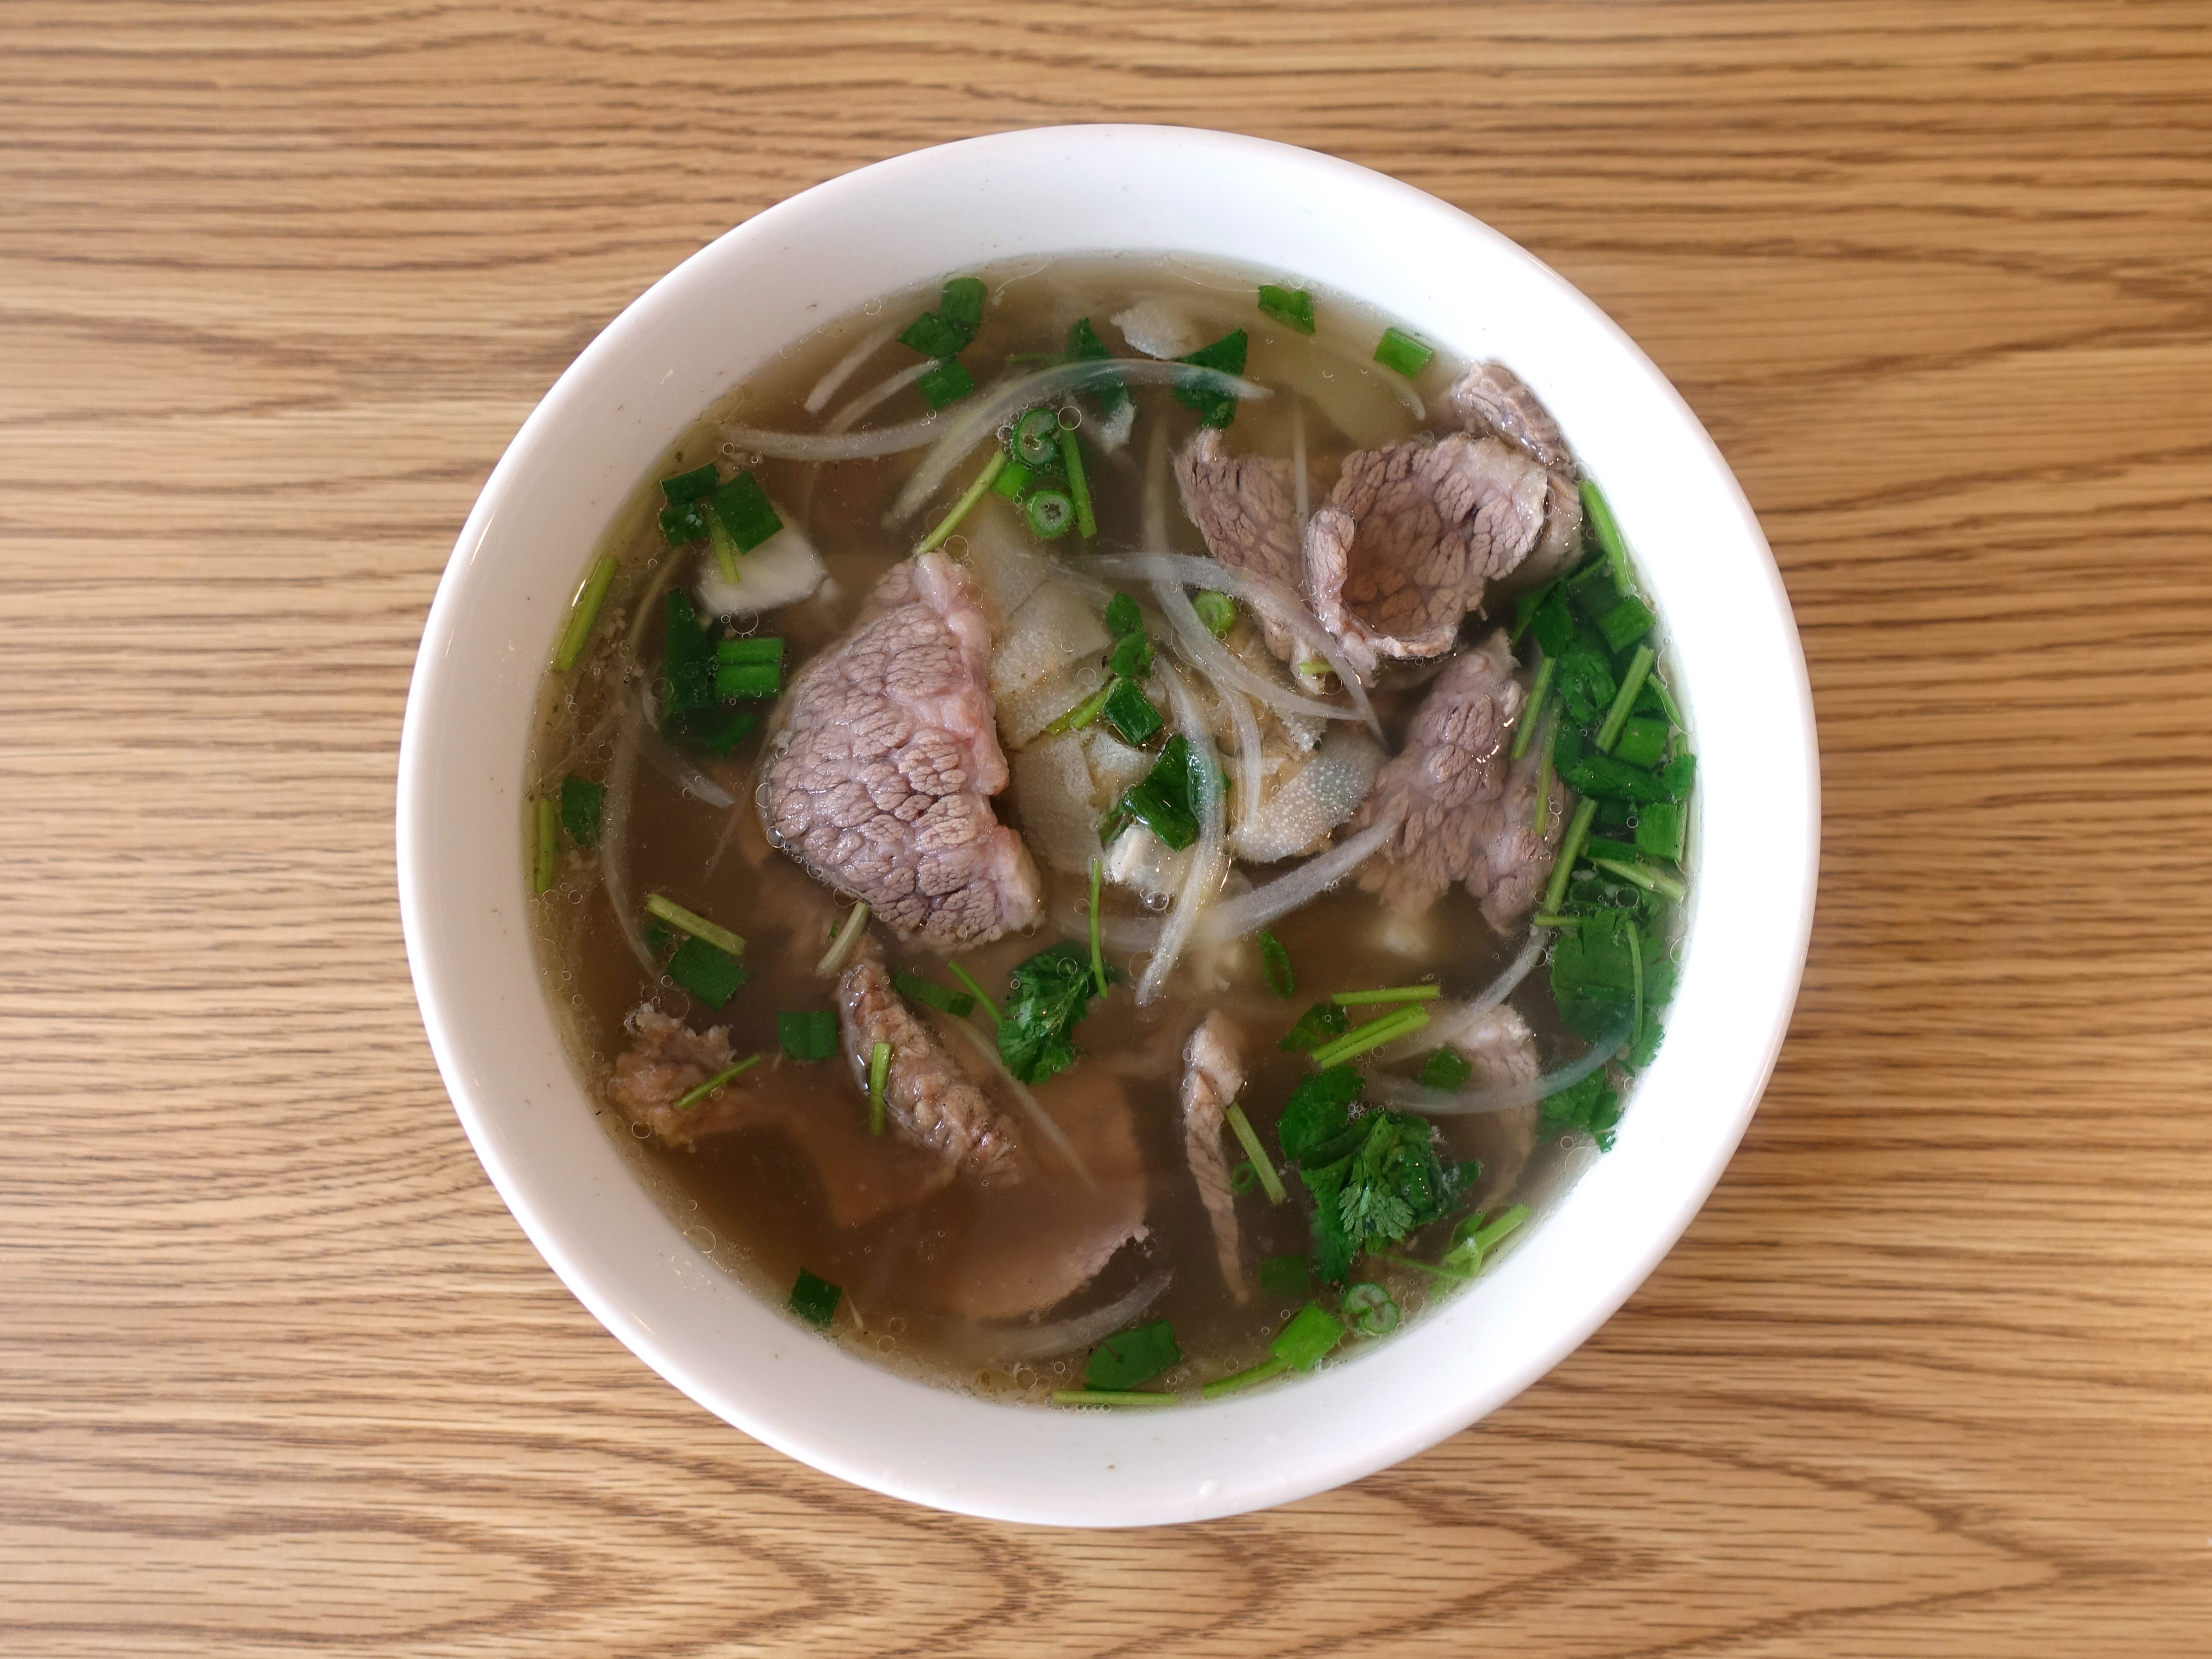 Pho dac biet at Pho Vinh Long in Phoenix.